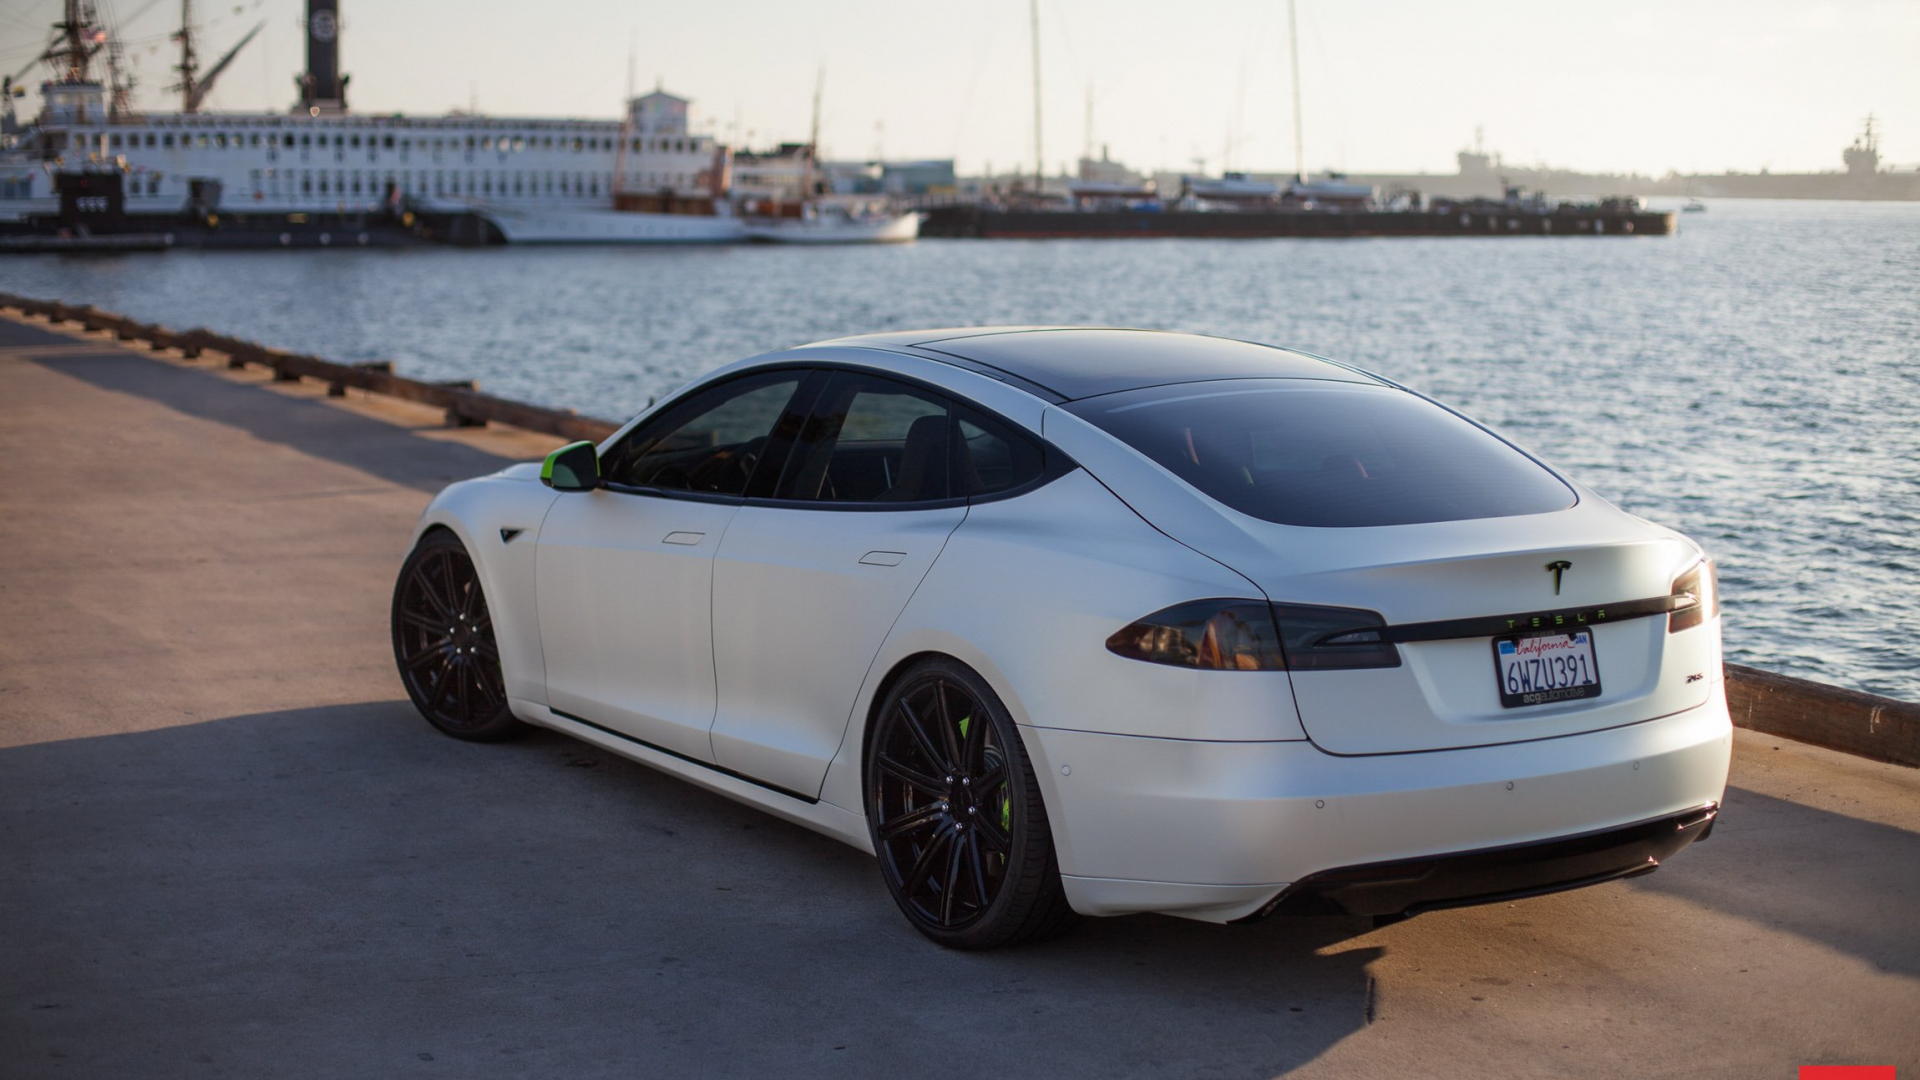 Free Download Tesla Model S Iphone Wallpaper 2299x1533 For Your